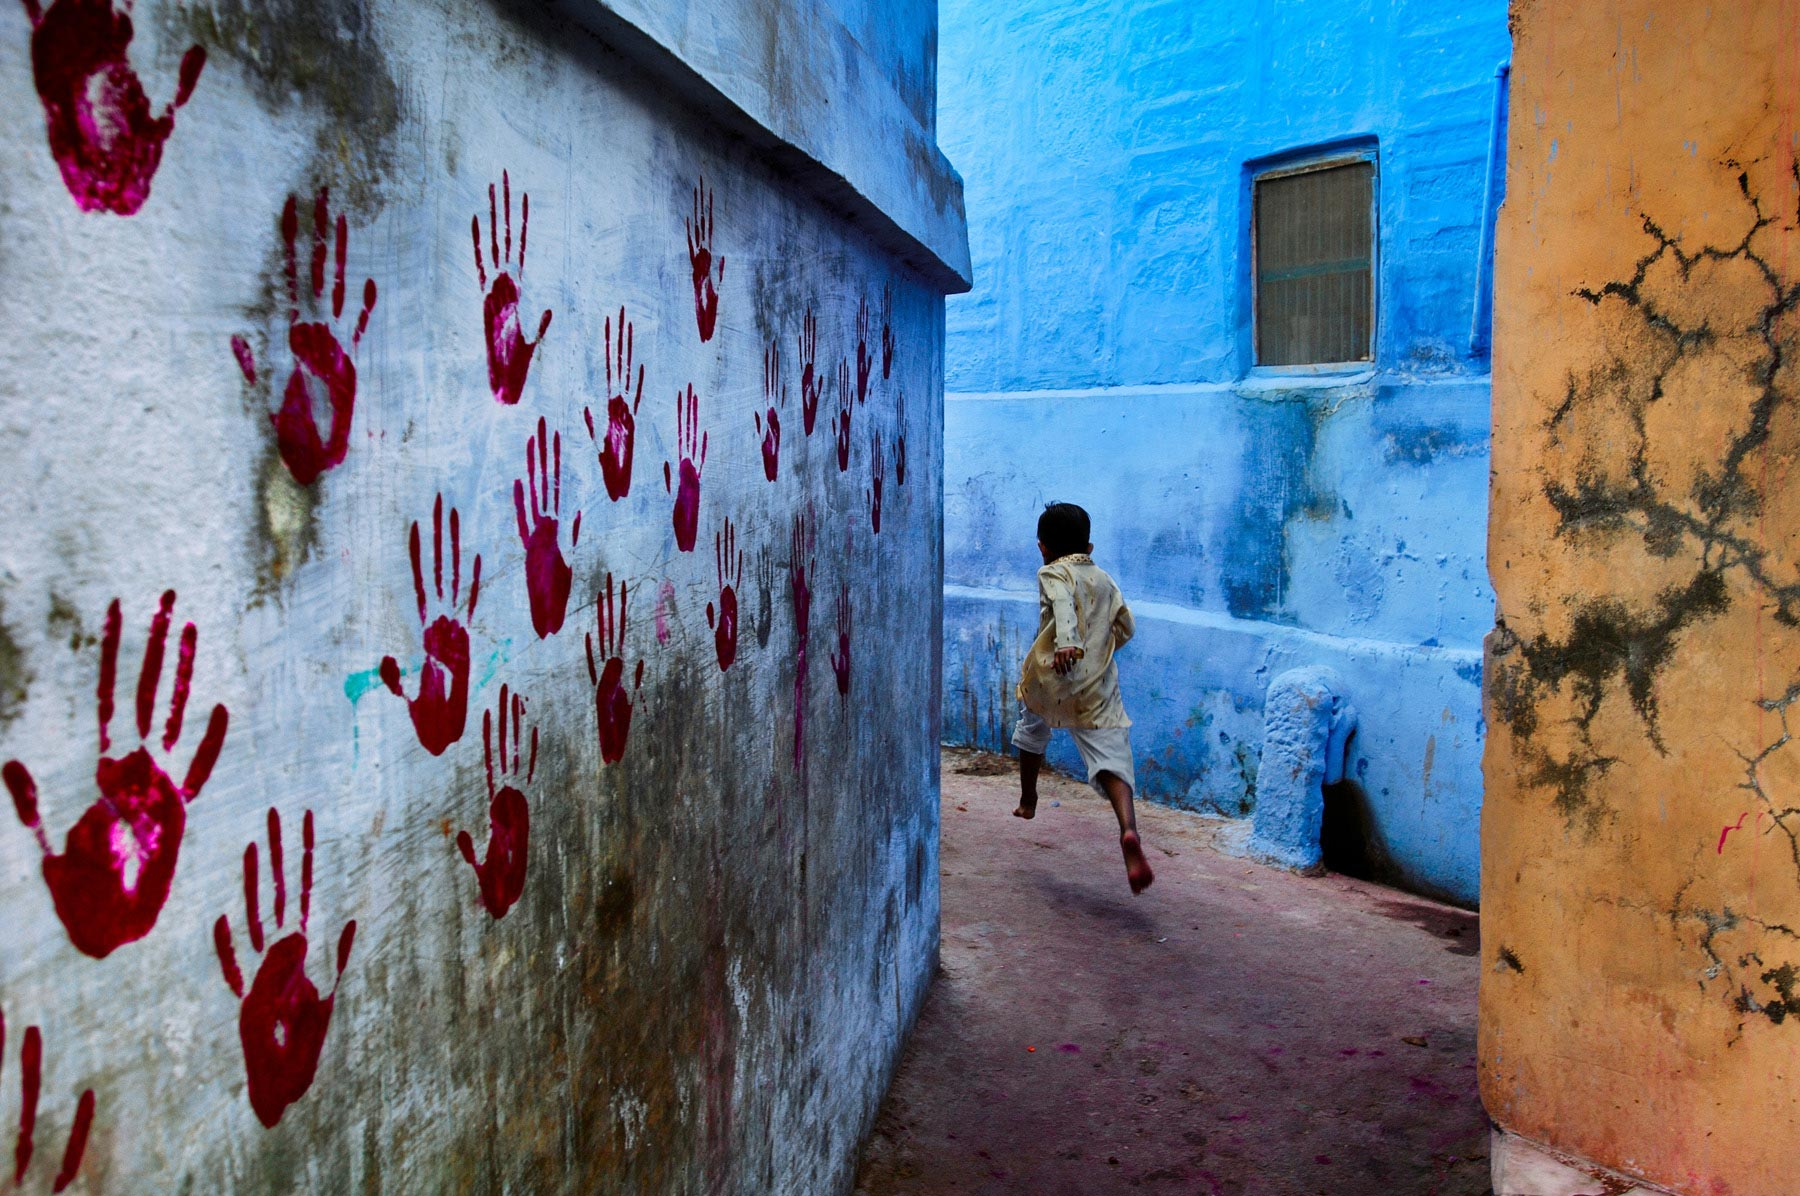 Boy in mid-flight, Jodhpur, India, 2007 At the foot of the vast Mehrangarh Fort, one can find the Blue City, a small tightly knit maze of houses located towards the north of Jodhpur. In one of the narrow alleyways a boy flees McCurry's camera. Balancing three intersecting planes of colour - one of which is covered in stark red handprints - the image pulsates with energy as a young boy dashes through the narrow alleyways. At the foot of the vast Mehrangarh Fort, one can find the Blue City, a small tightly knit maze of houses located towards the north of Jodhpur. Balancing three intersecting planes of colour - one of which is covered in stark red handprints - the image pulsates with energy as a young boy dashes through the narrow alleyways. Phaidon, The Unguarded Moment, Iconic Photographs, IP page 6, final print_poster